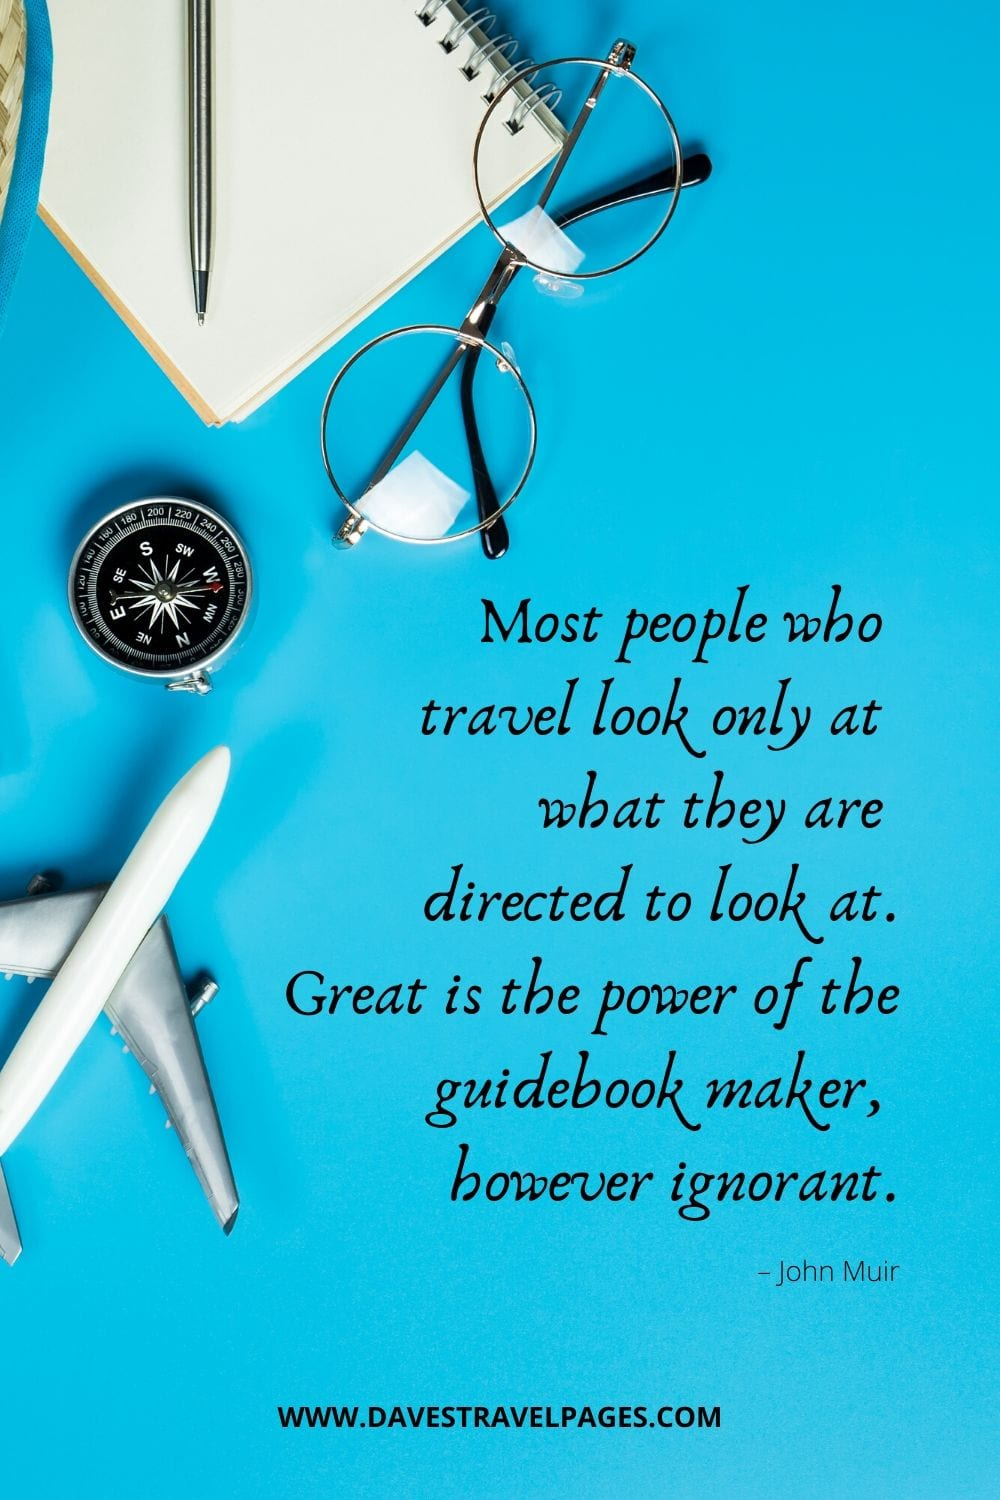 """Travel Quotes: """"Most people who travel look only at what they are directed to look at. Great is the power of the guidebook maker, however ignorant."""" – John Muir"""